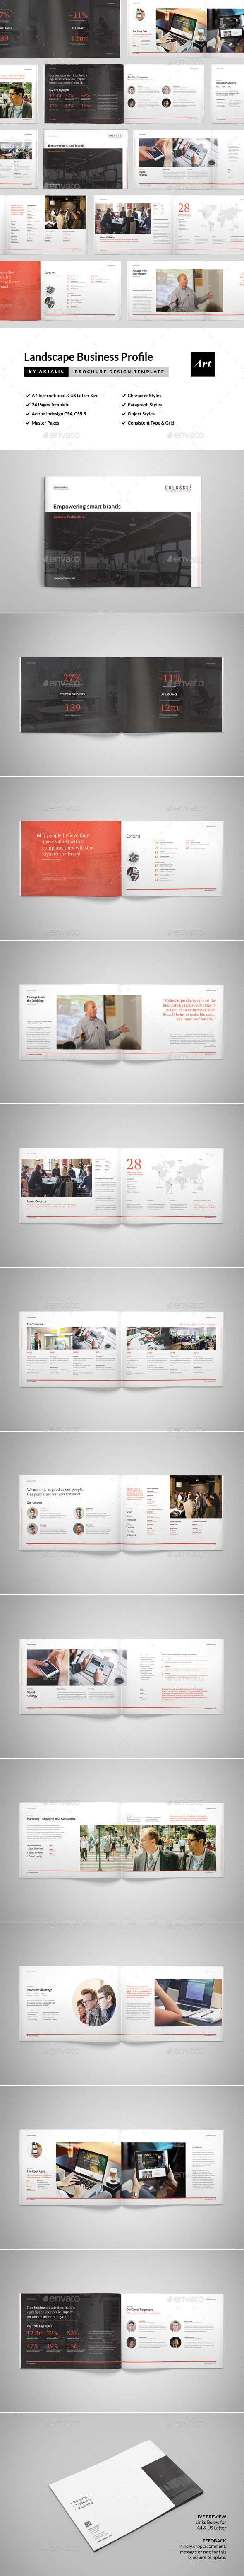 Corporate Brochure (Landscape Format) - Corporate Brochures